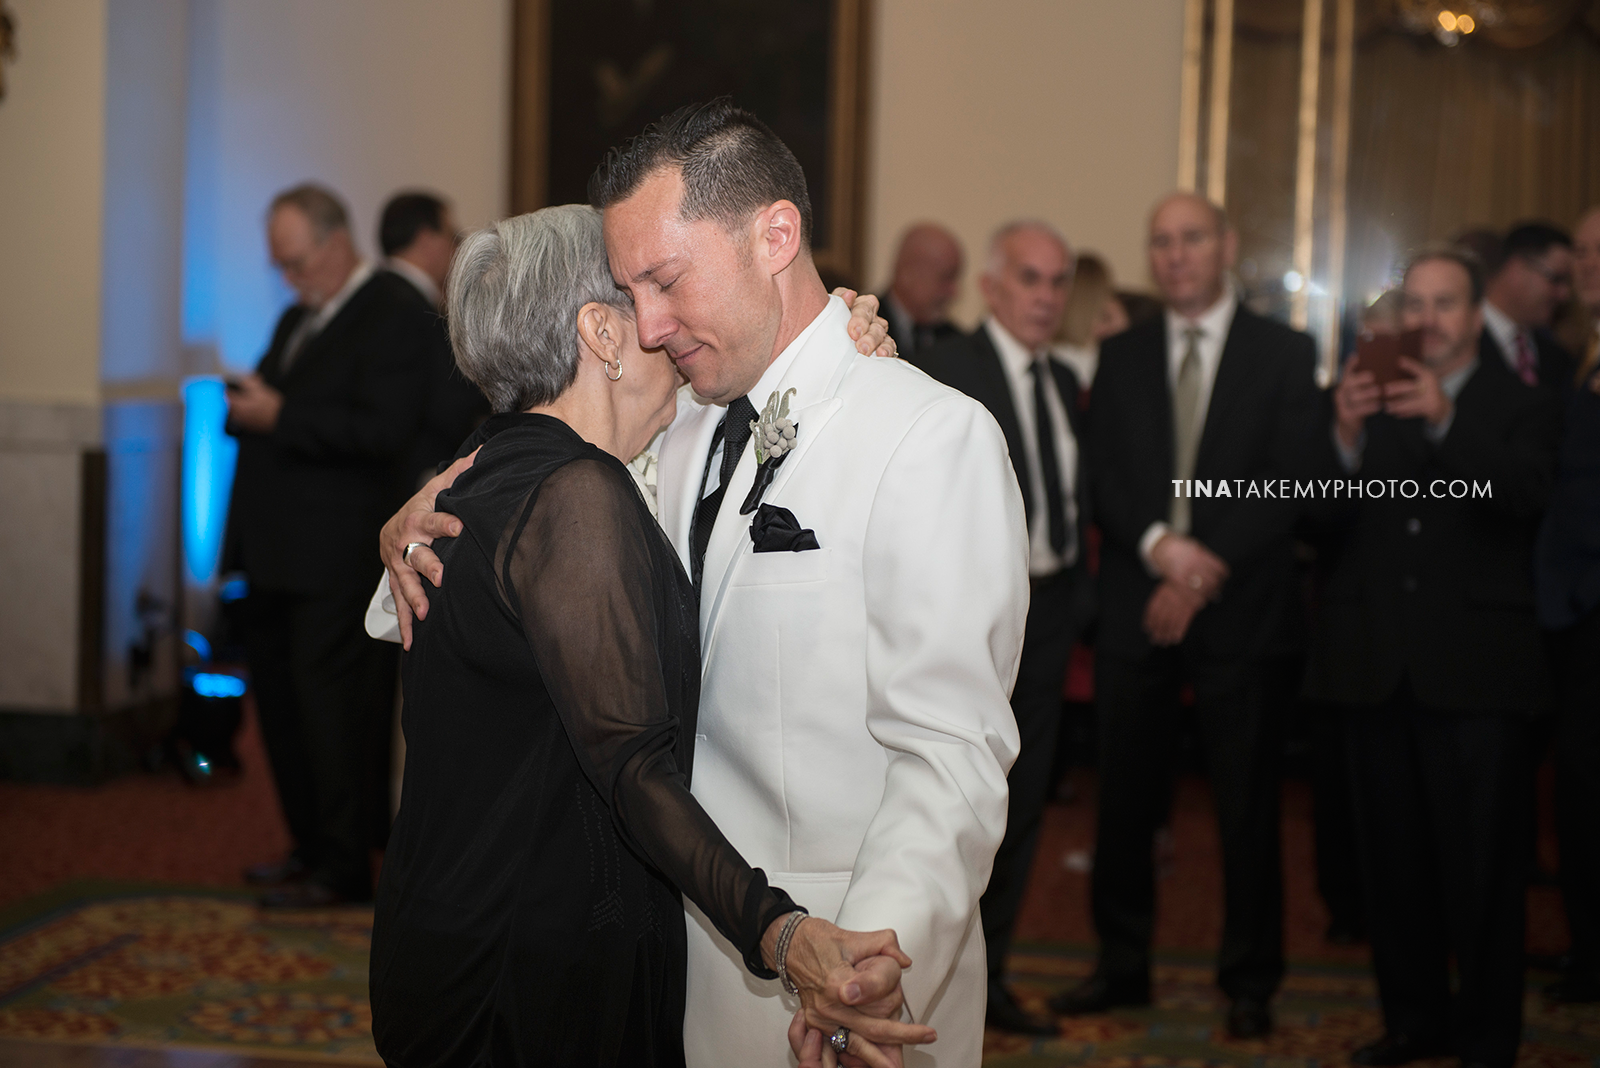 30-Washington-DC-Virginia-Gay-Same-Sex-Wedding-Men-12-13-14-Mother-Son-Dance-White-Tux-Photographer-Mayflower-Hotel-Ballroom